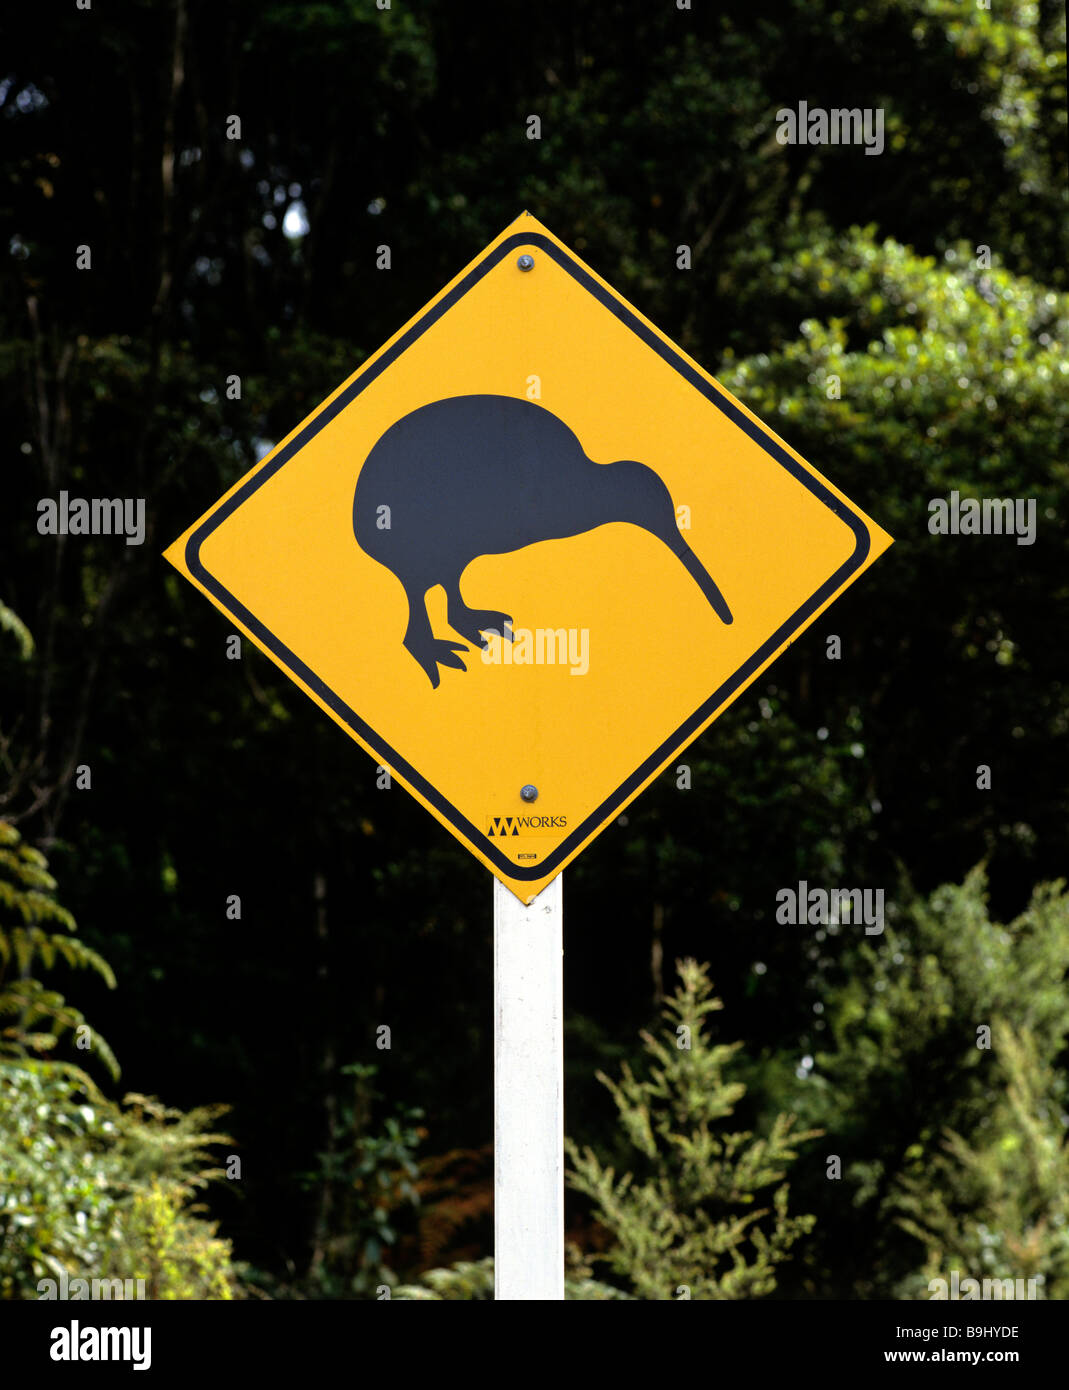 Kiwi sign, road sign, New Zealand Stock Photo